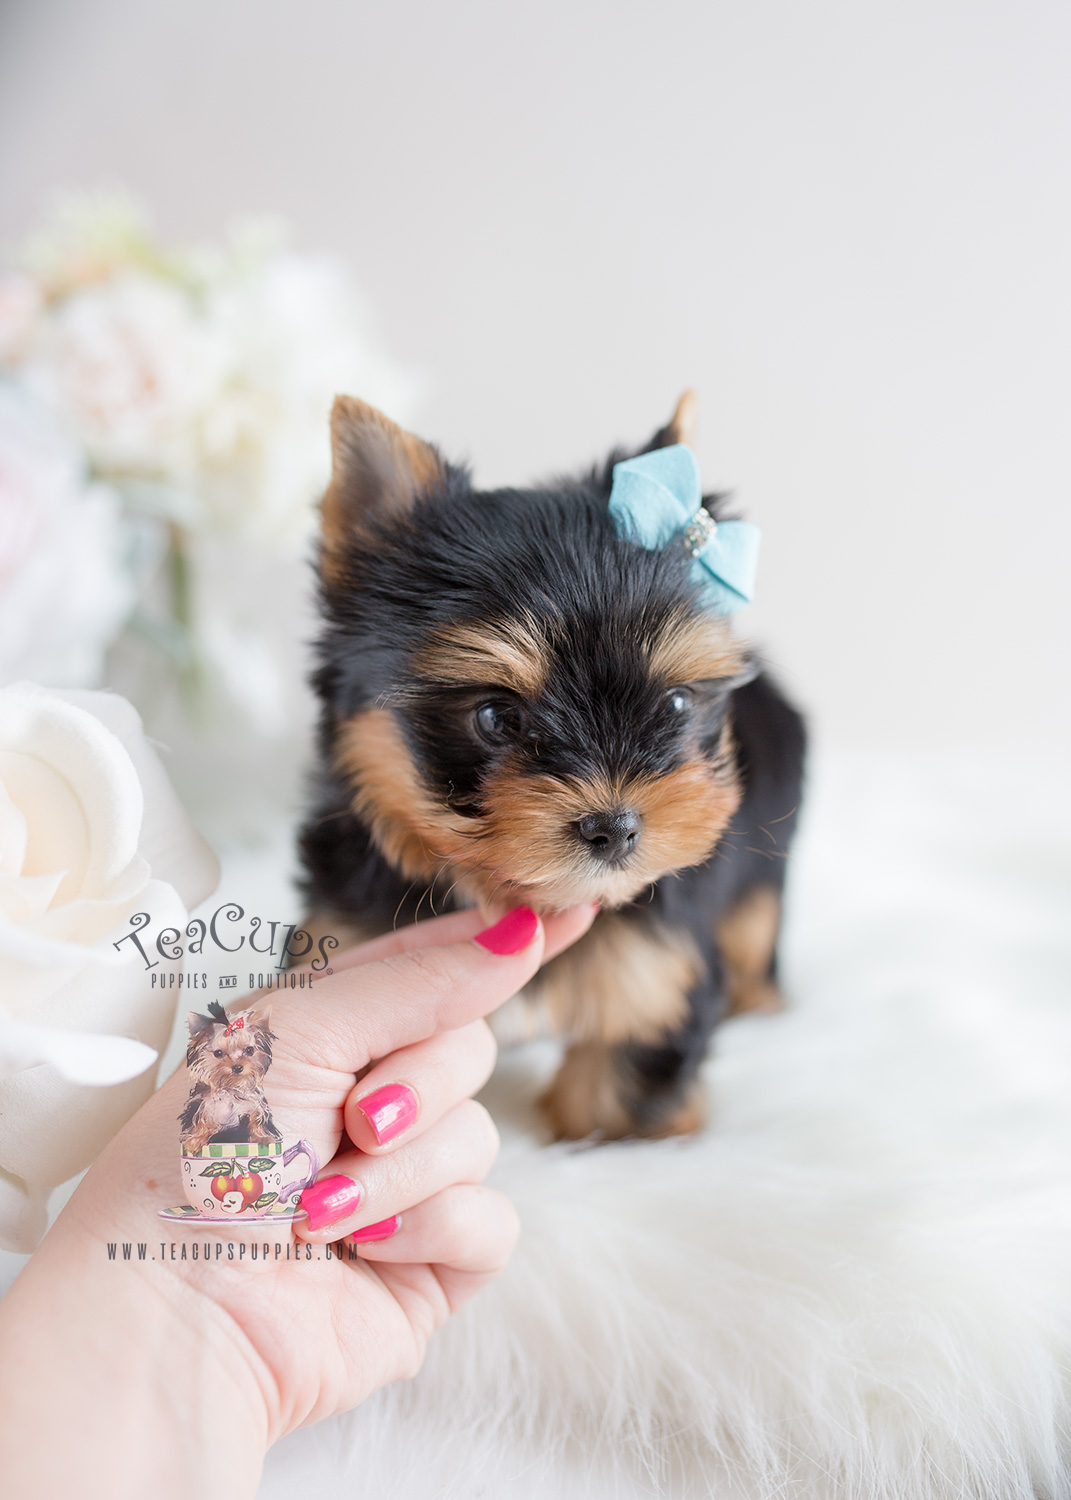 Teacup Puppies #106 Yorkie Puppy For Sale